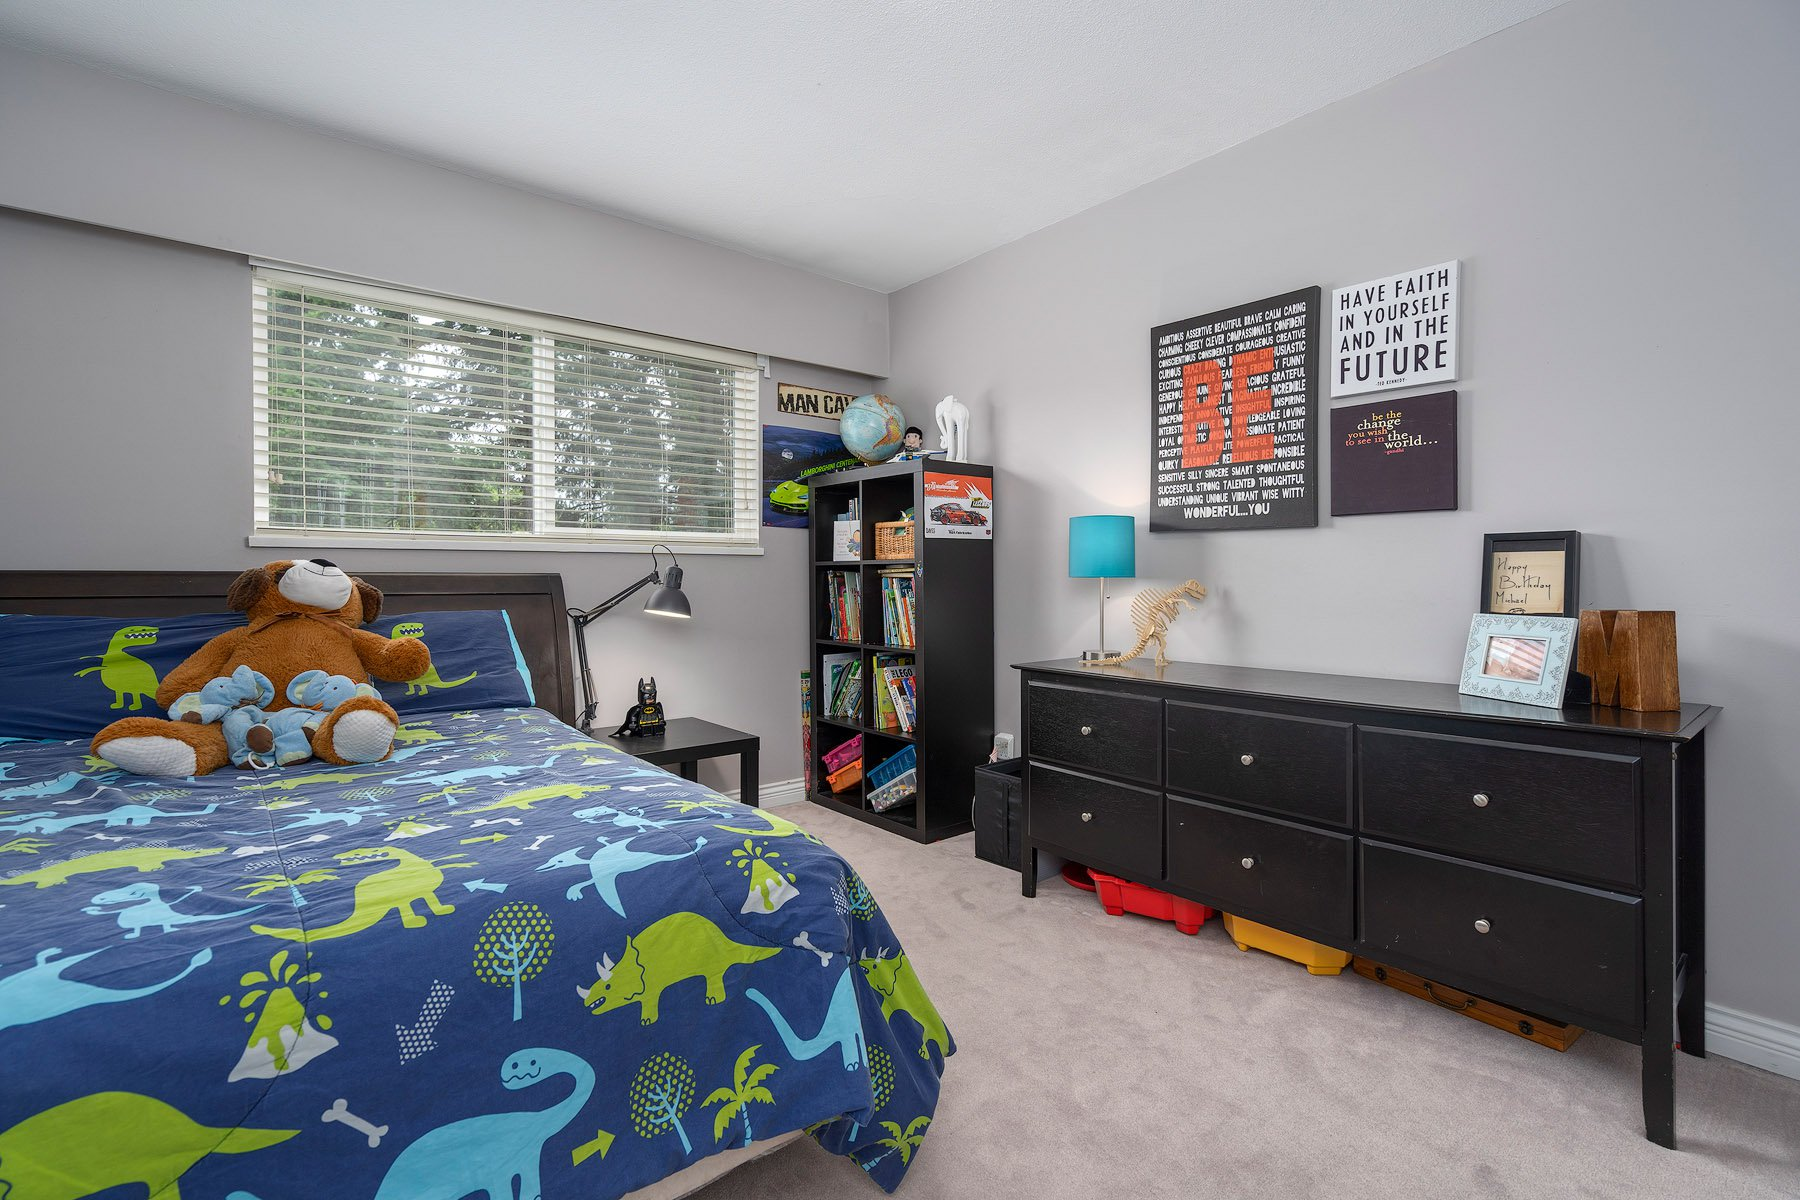 Photo 15: Photos: 423 MONTGOMERY Street in Coquitlam: Central Coquitlam House for sale : MLS®# R2380693